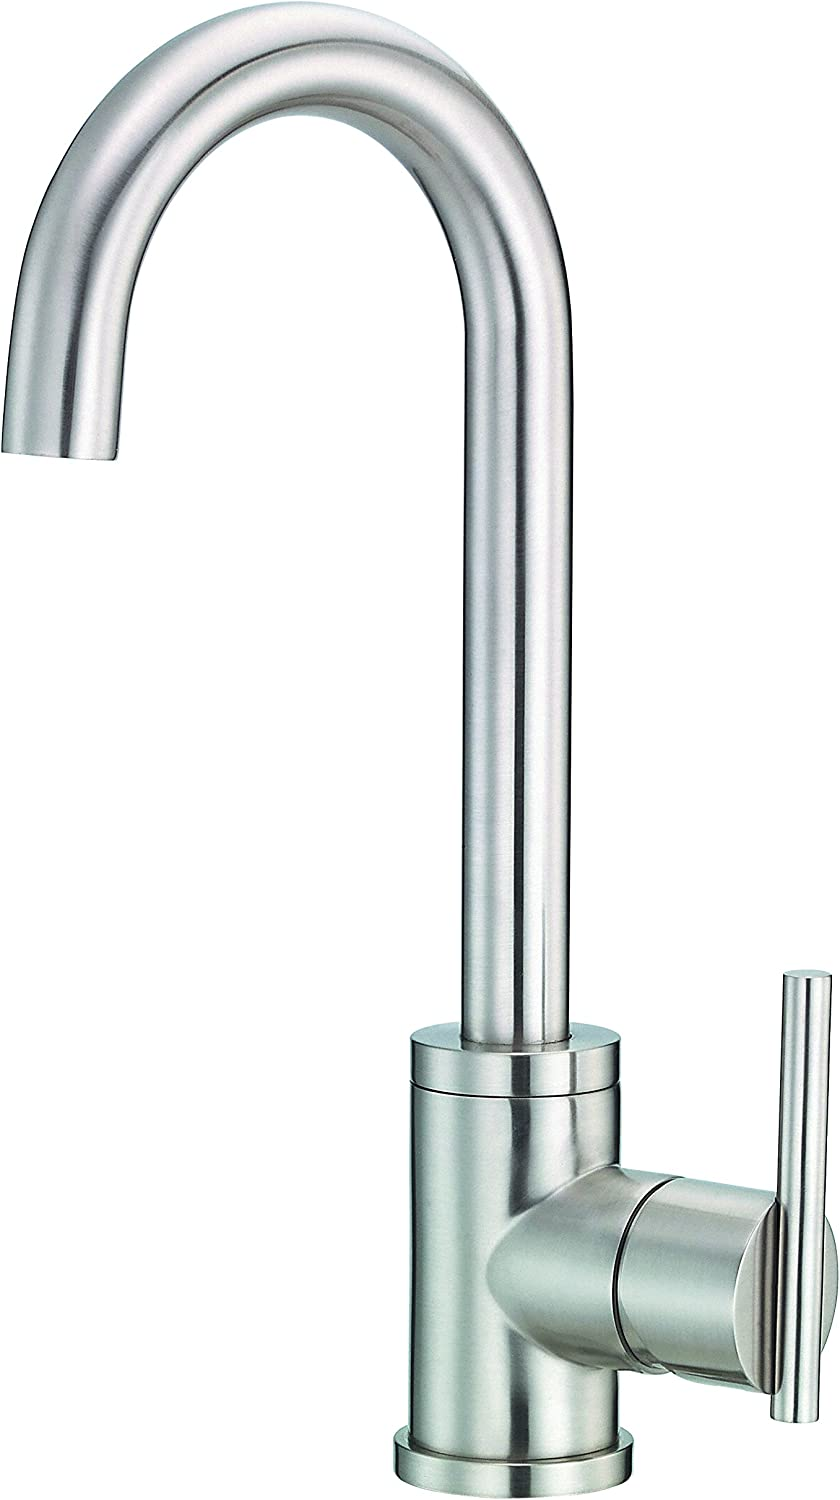 Danze D150558SS Parma Single Handle Bar Faucet, Stainless Steel, Stainless Steel by Danze